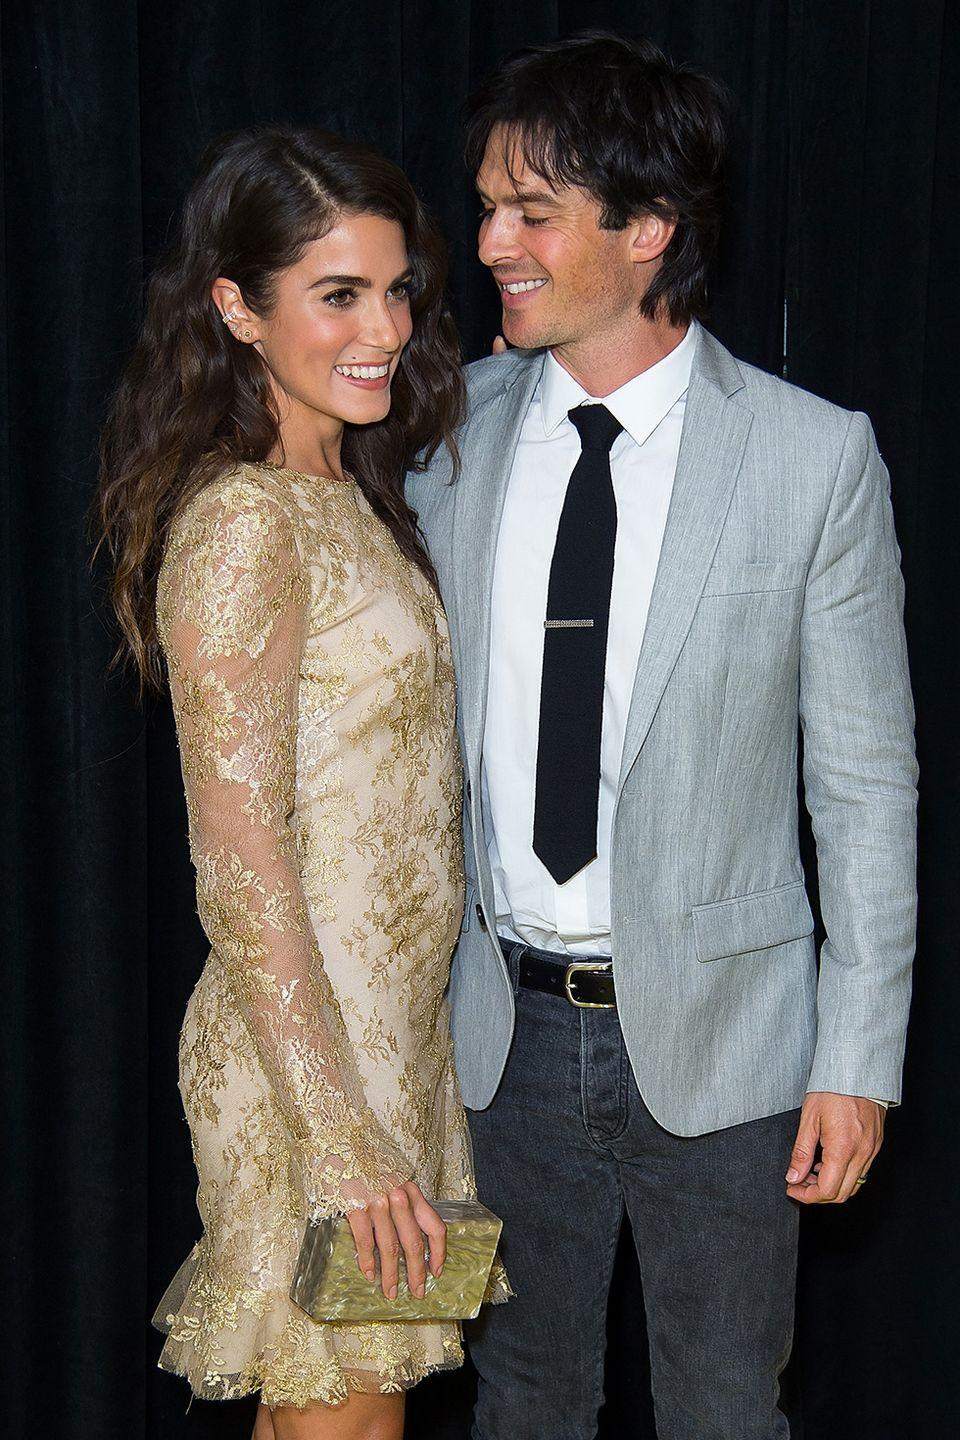 "<p>After six months of dating, the actors got engaged in January 2015, per <em><a class=""link rapid-noclick-resp"" href=""https://www.usmagazine.com/celebrity-news/news/nikki-reed-ian-somerhalder-engaged-after-six-months-of-dating-2015151/"" rel=""nofollow noopener"" target=""_blank"" data-ylk=""slk:US Weekly"">US Weekly</a></em>. They tied the knot that April in Malibu, California. They have a little girl together, Bodhi Soleil, and are still happily married.</p>"